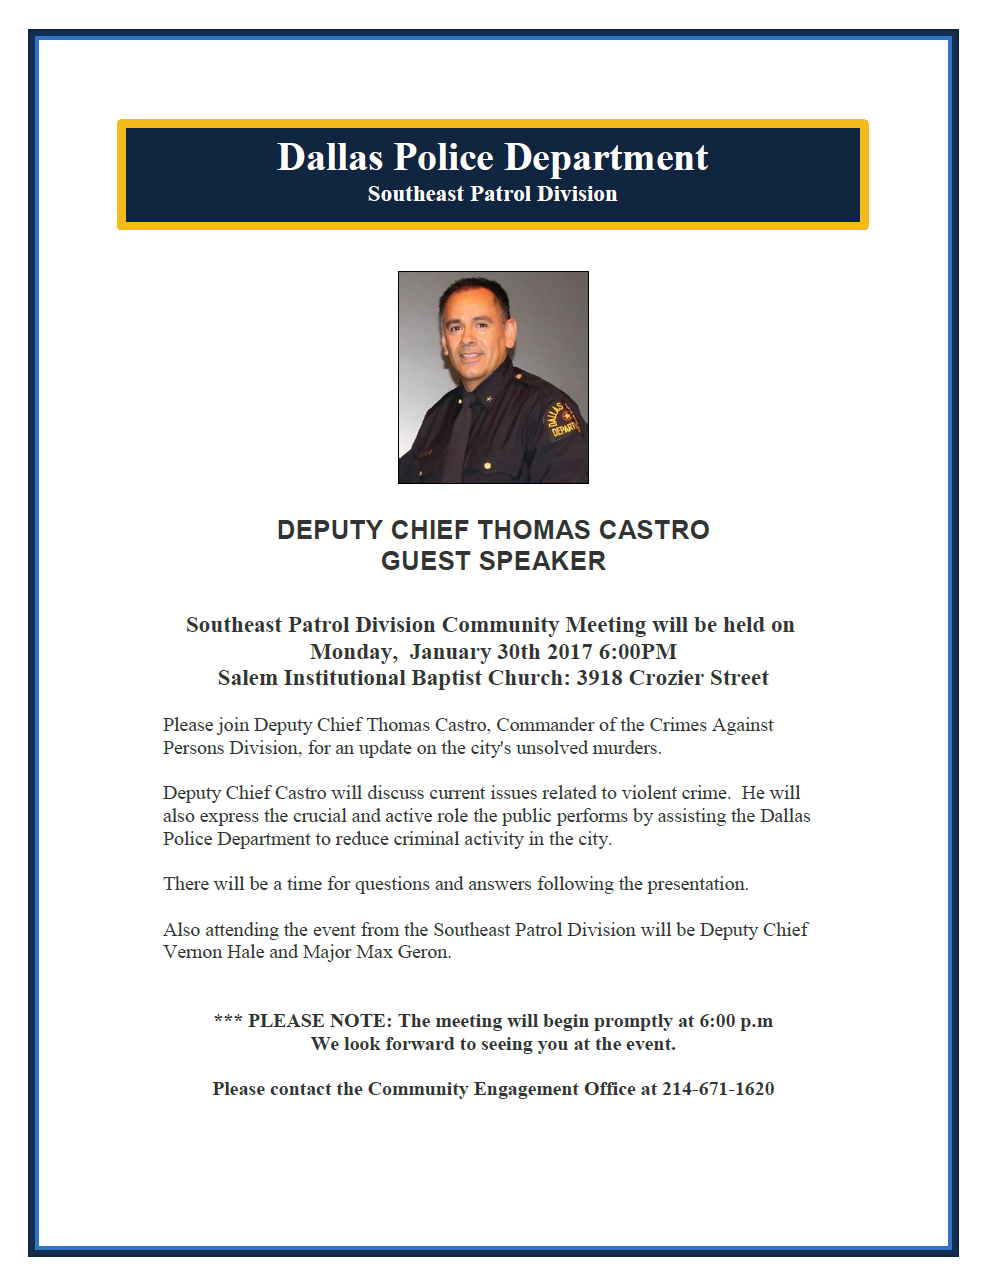 SOUTHEAST PATROL DIVISION COMMUNITY MEETING (Dallas Police